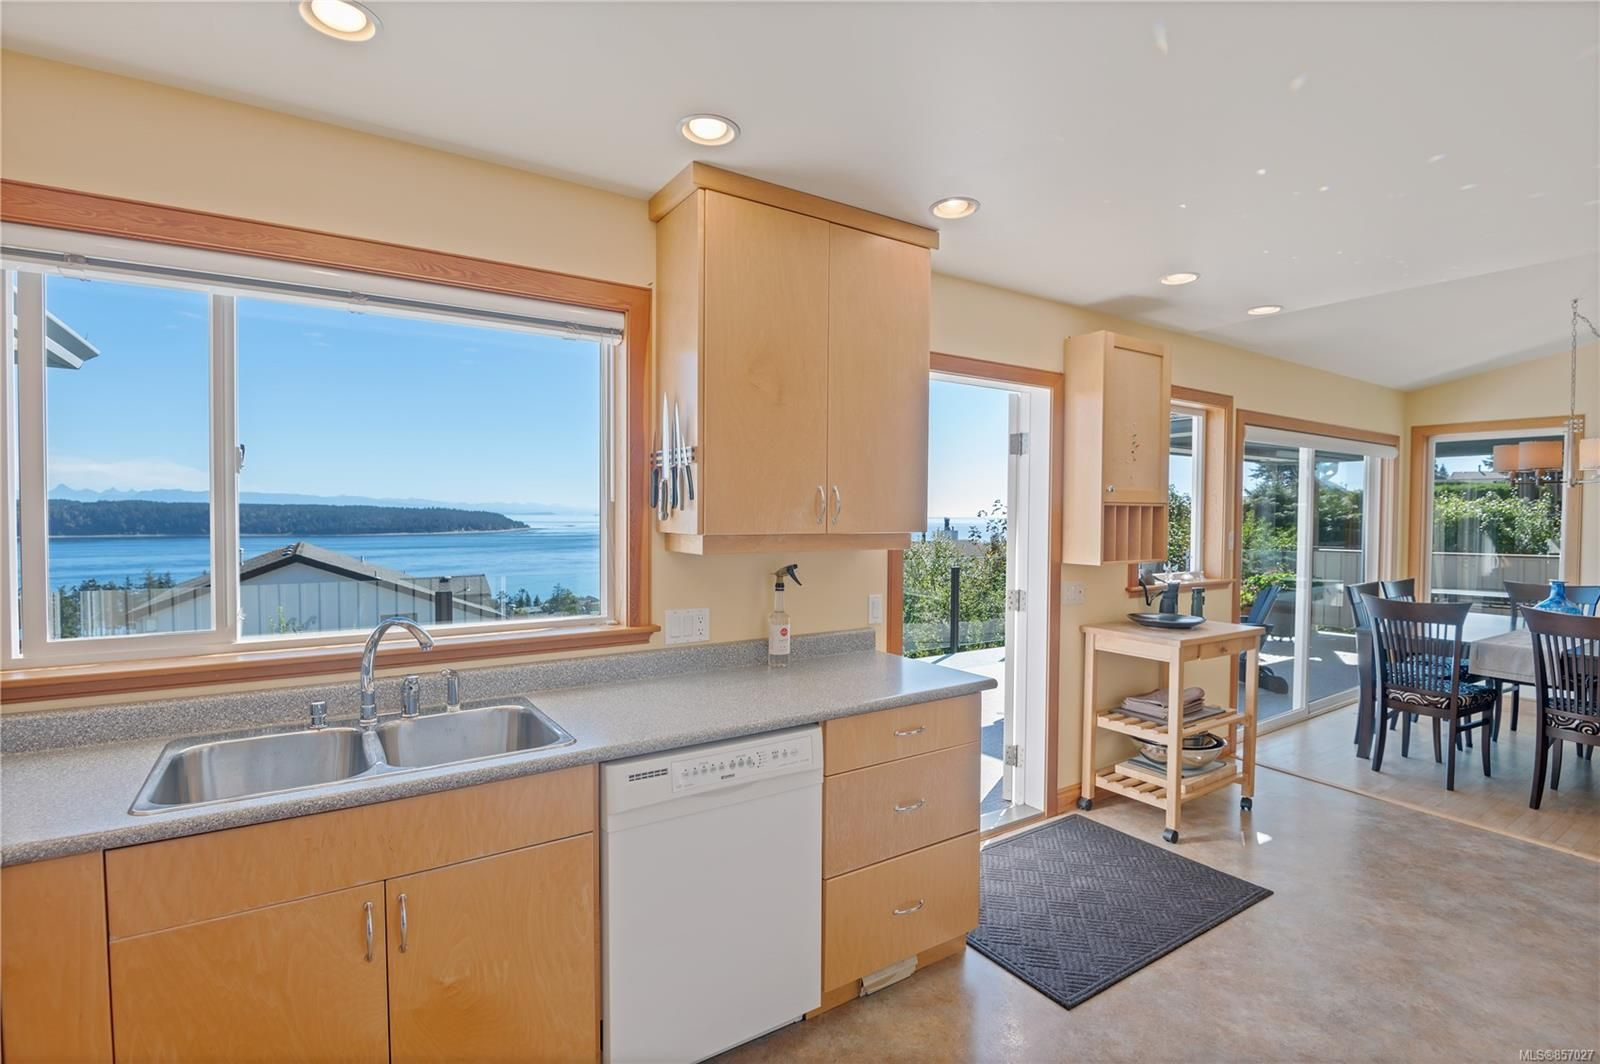 Photo 8: Photos: 253 S Alder St in : CR Campbell River South House for sale (Campbell River)  : MLS®# 857027